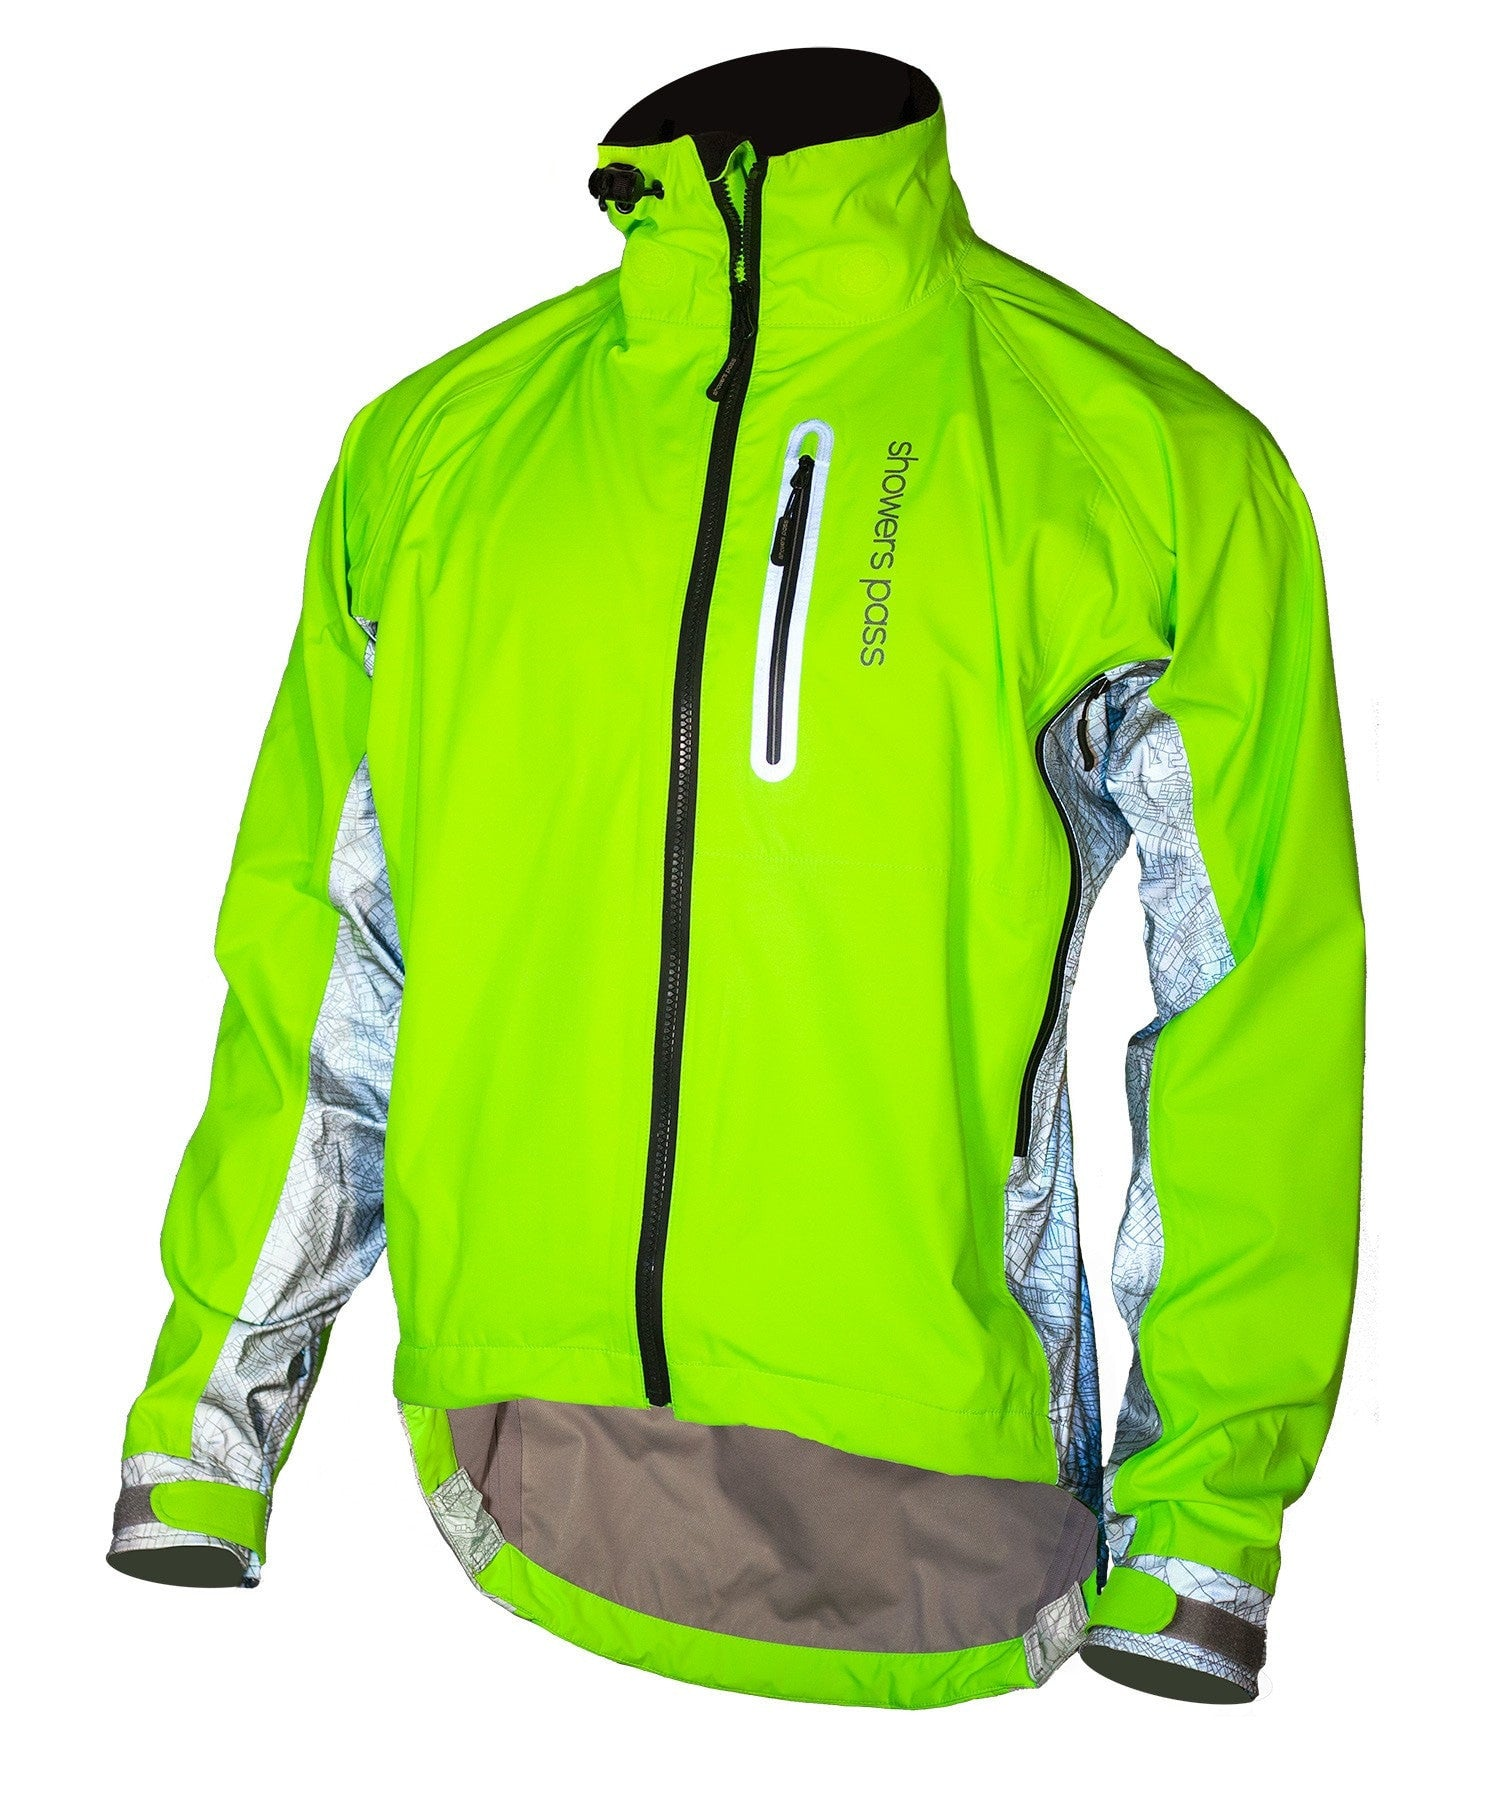 Men's Hi-Vis Elite E-Bike Jacket - with Red LED Beacon Lights